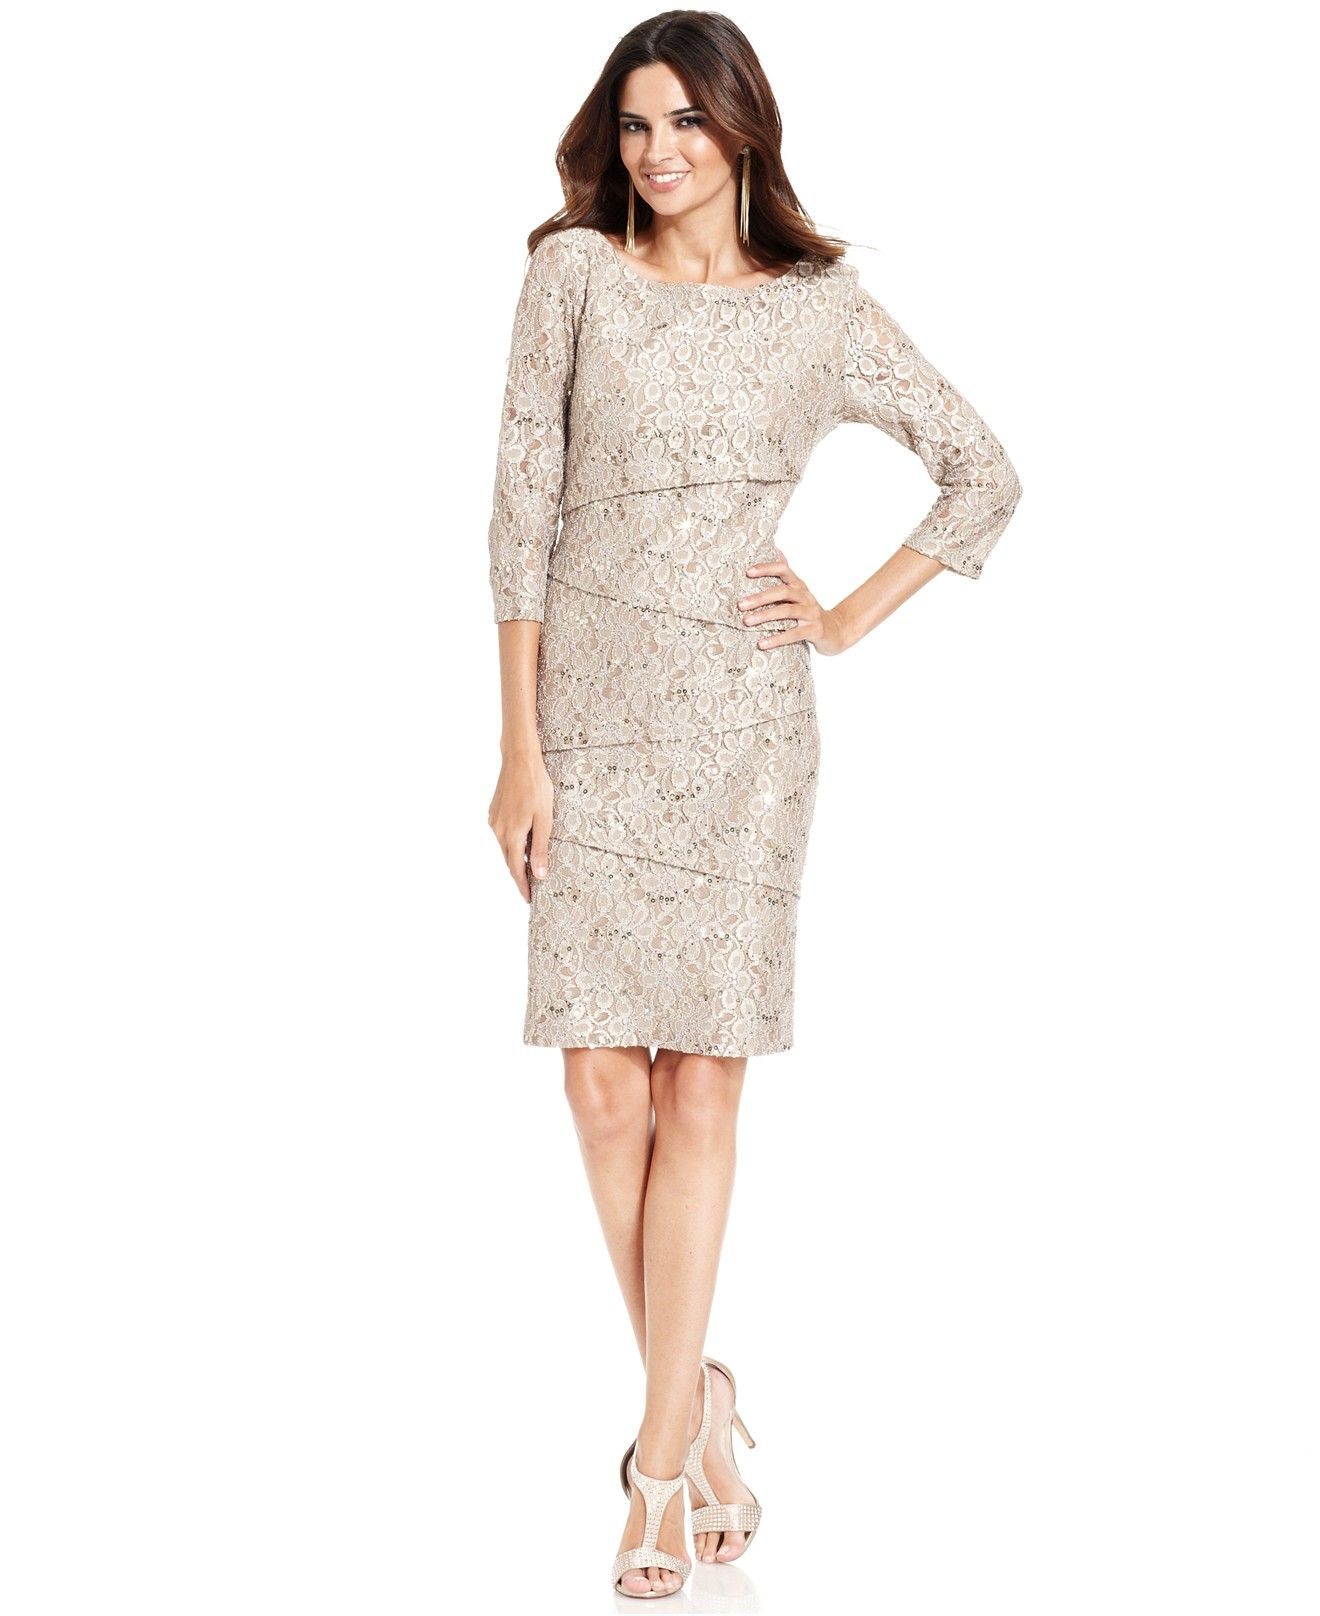 Ronni Nicole Tiered Sequin Lace Dress Dresses Women